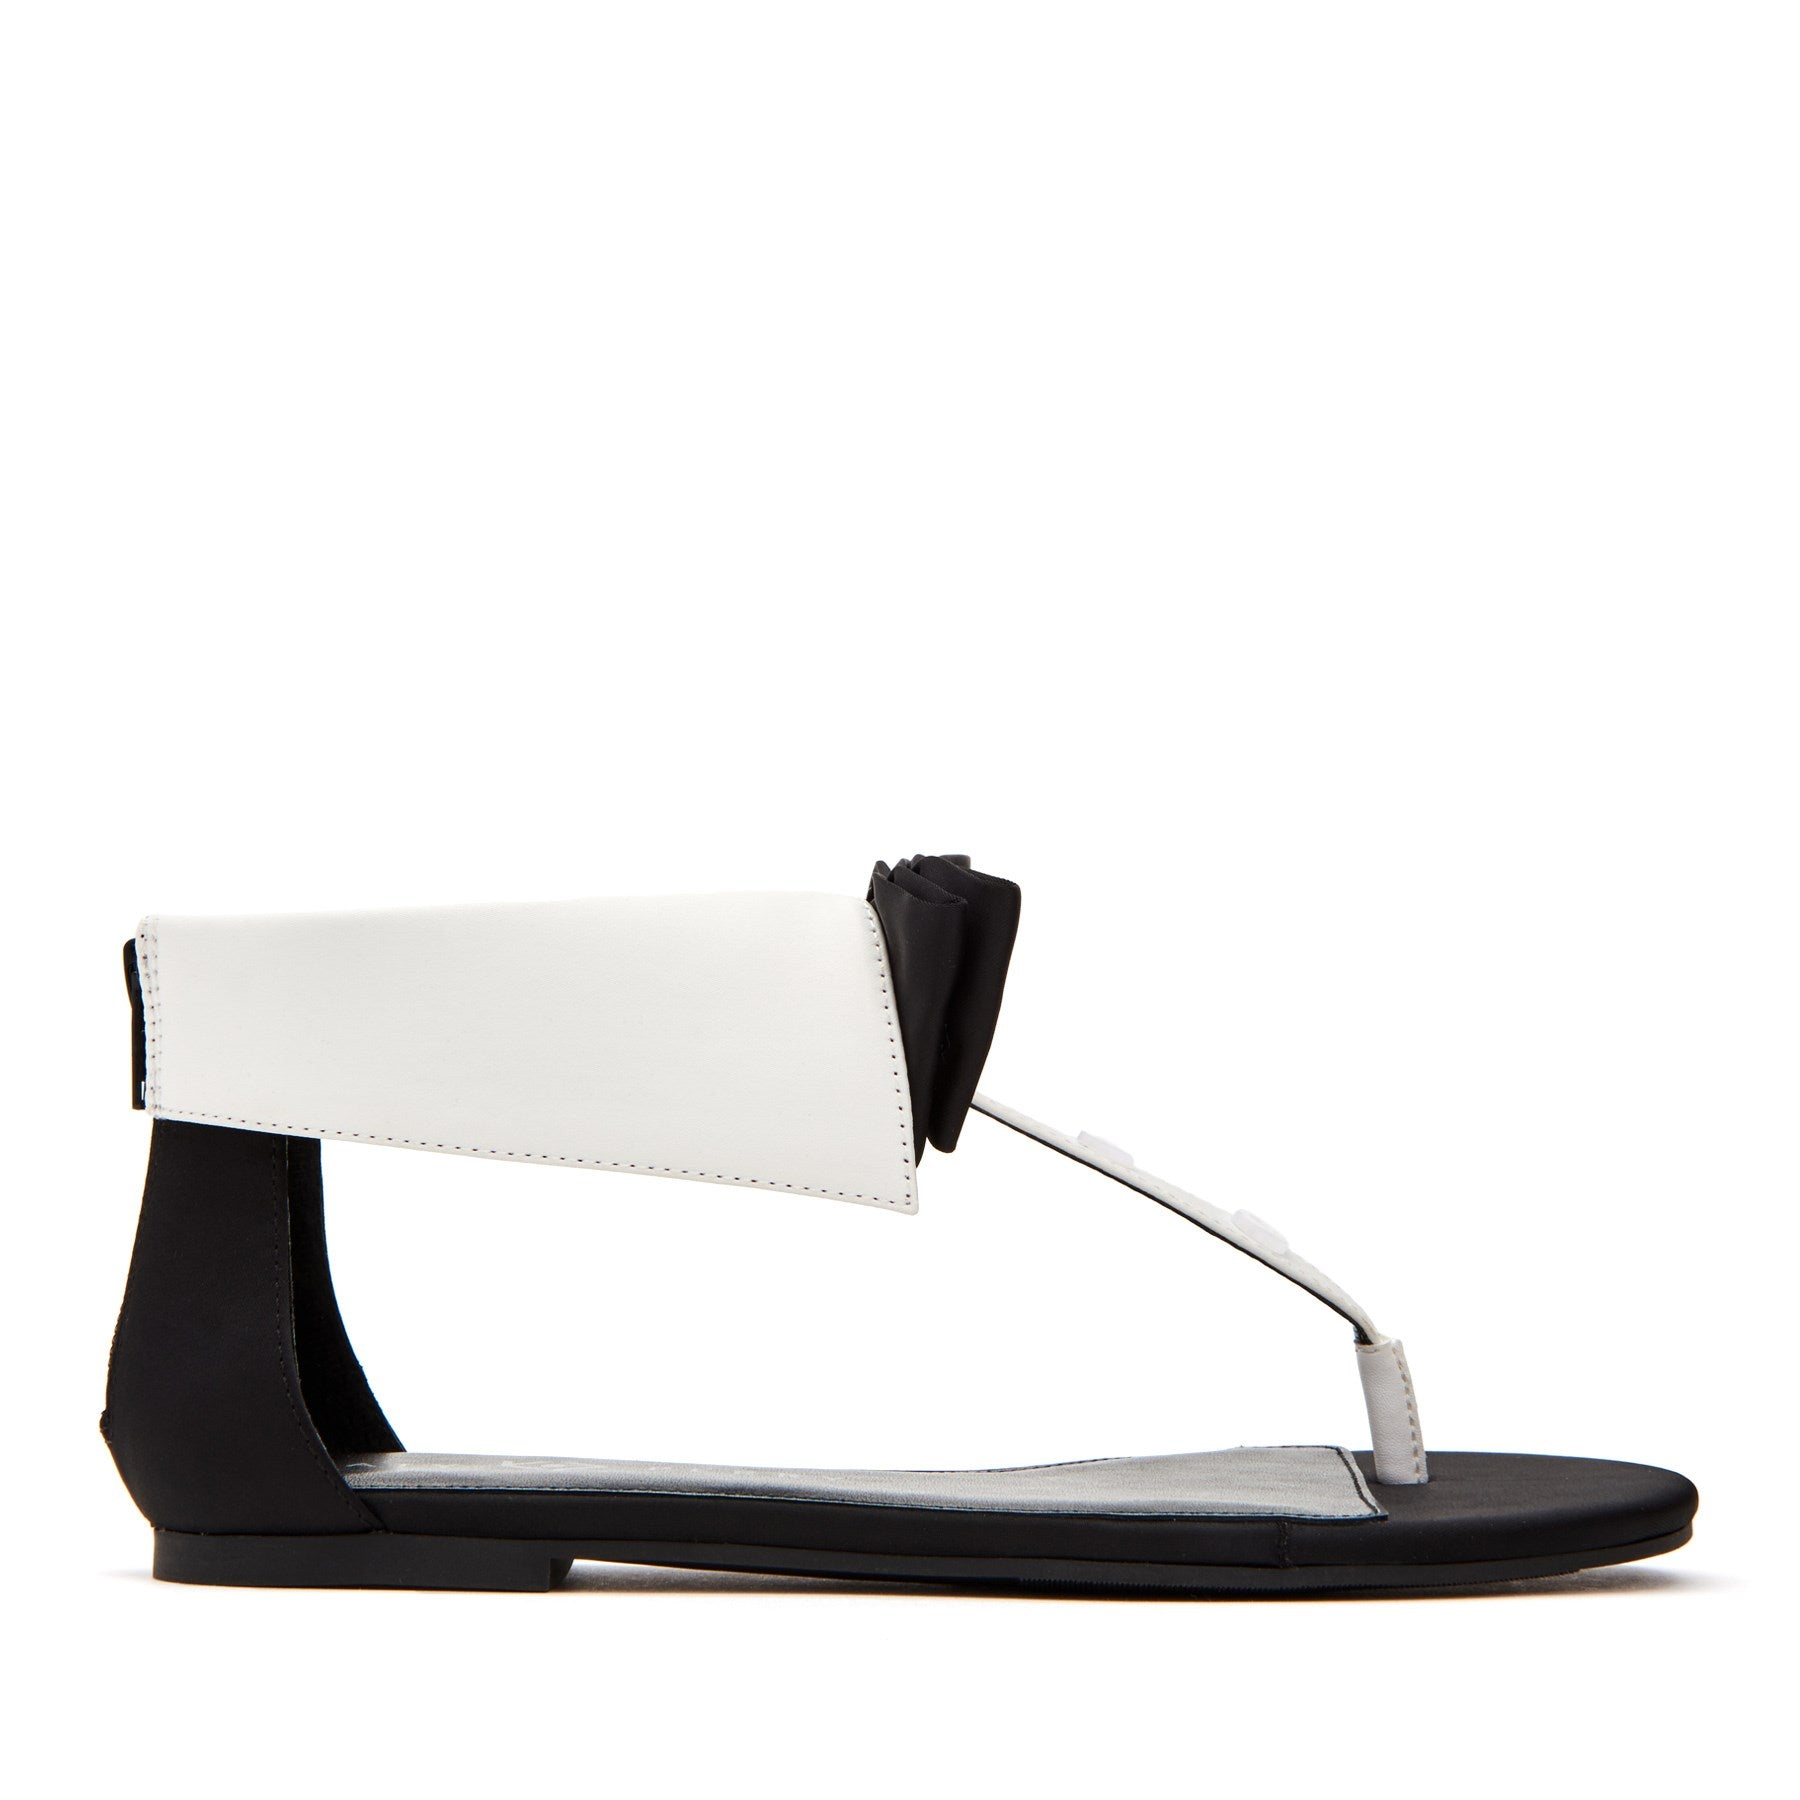 katy perry sandal in black size 5.5   the delle